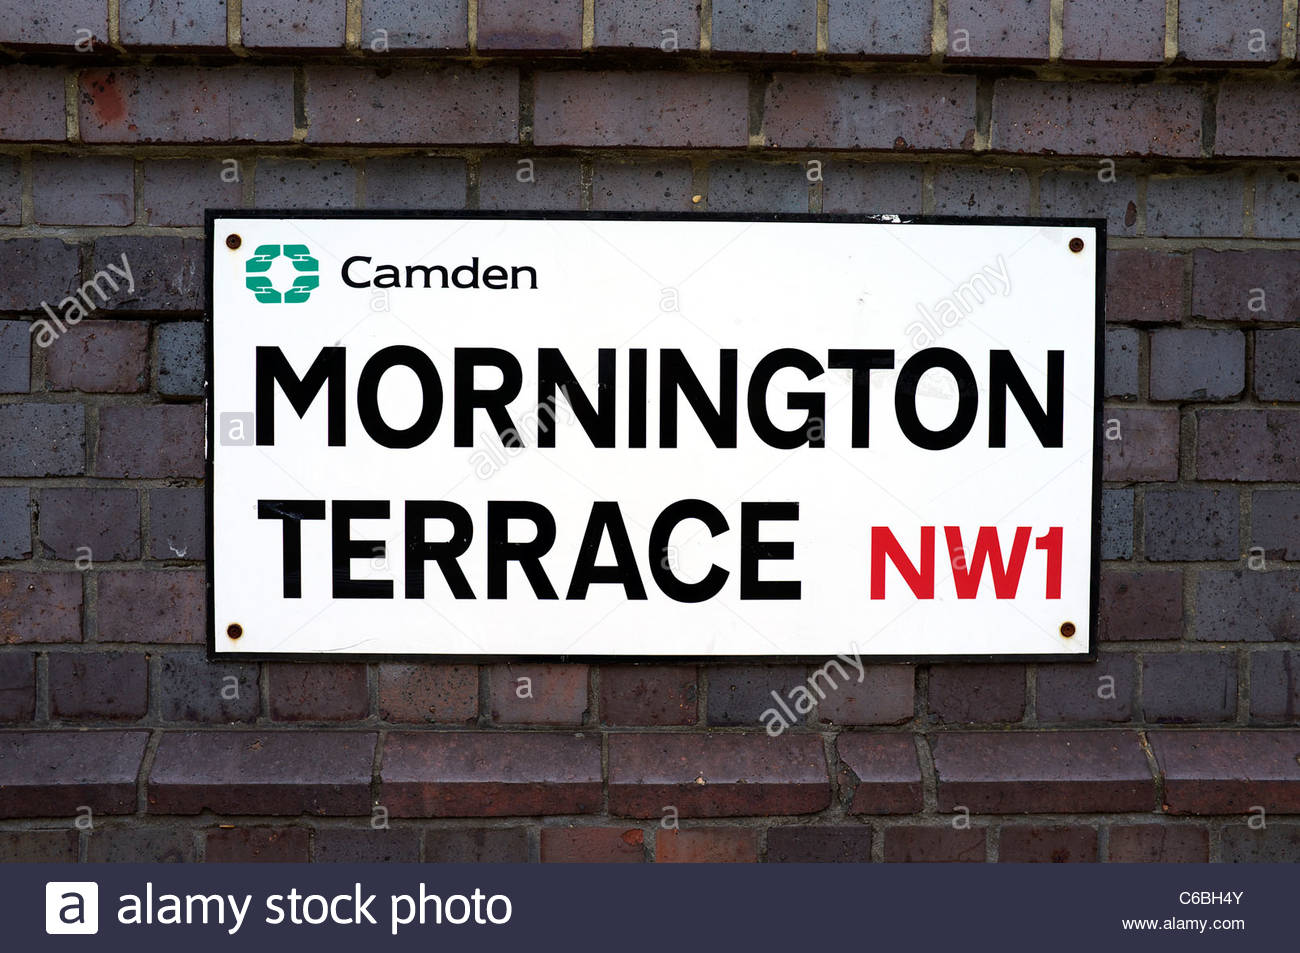 Street name sign for Mornington Terrace, Camden Town, north west London NW1, UK. - Stock Image